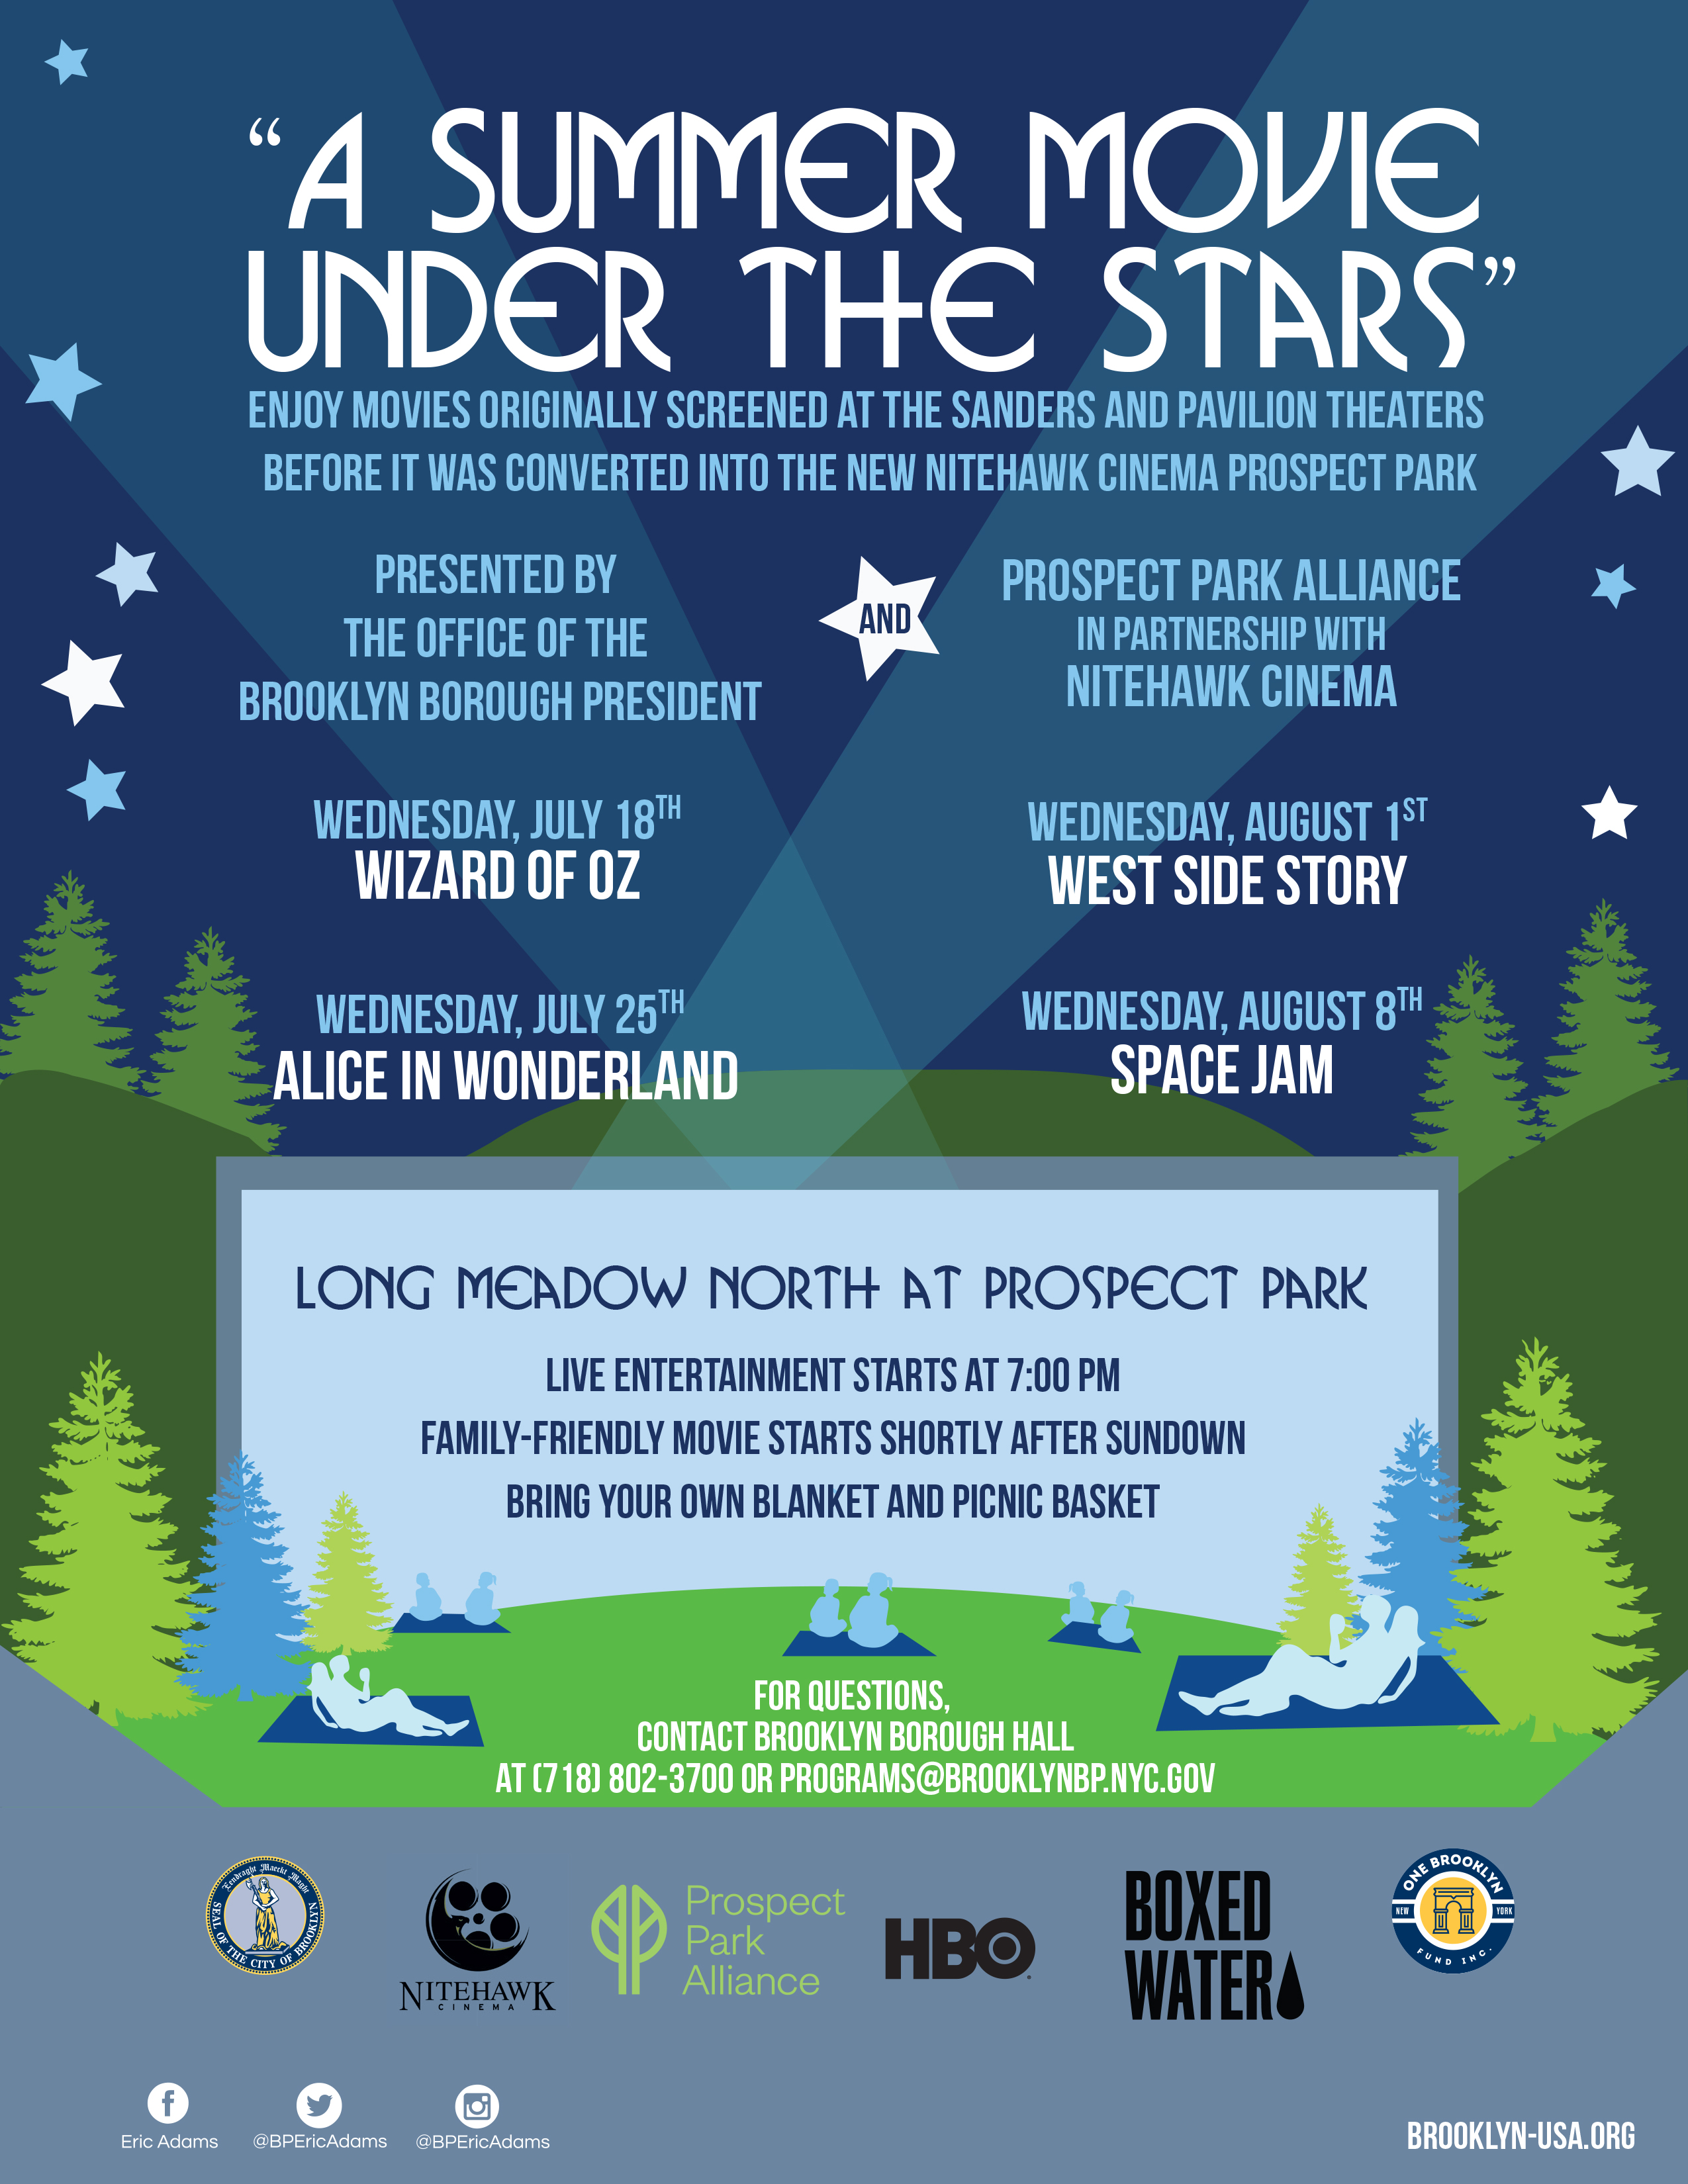 Poster for A SUMMER MOVIE UNDER THE STARS